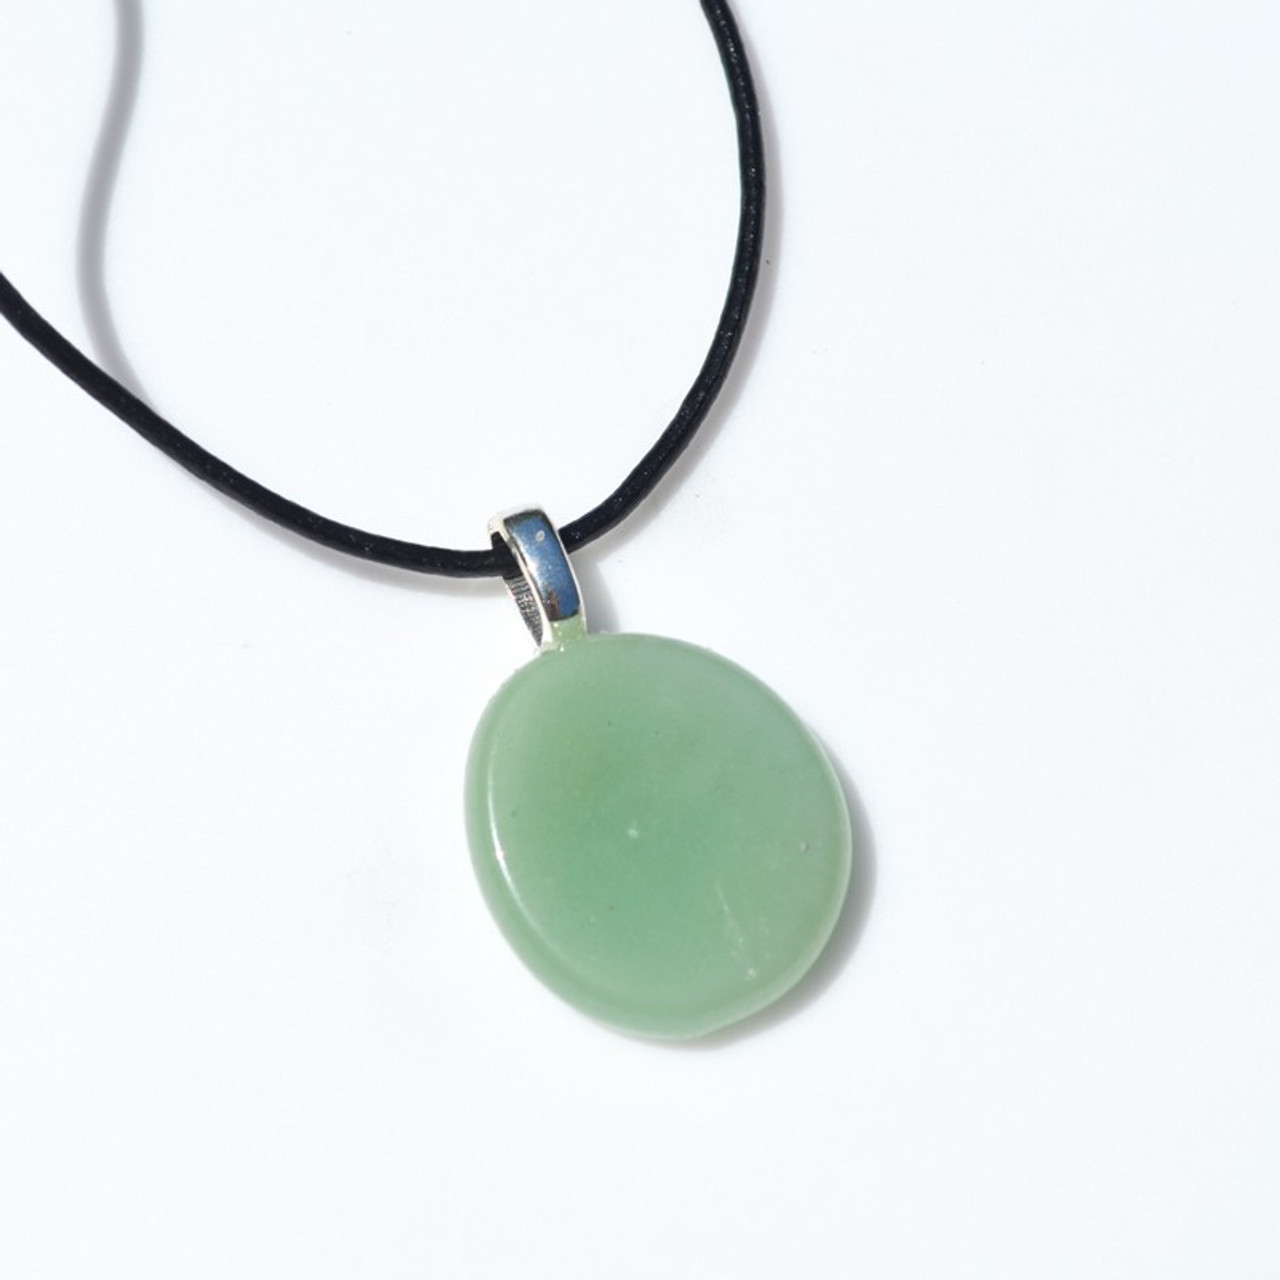 Green Aventurine Palm Stone on a Leather Thong Necklace - Made to Order